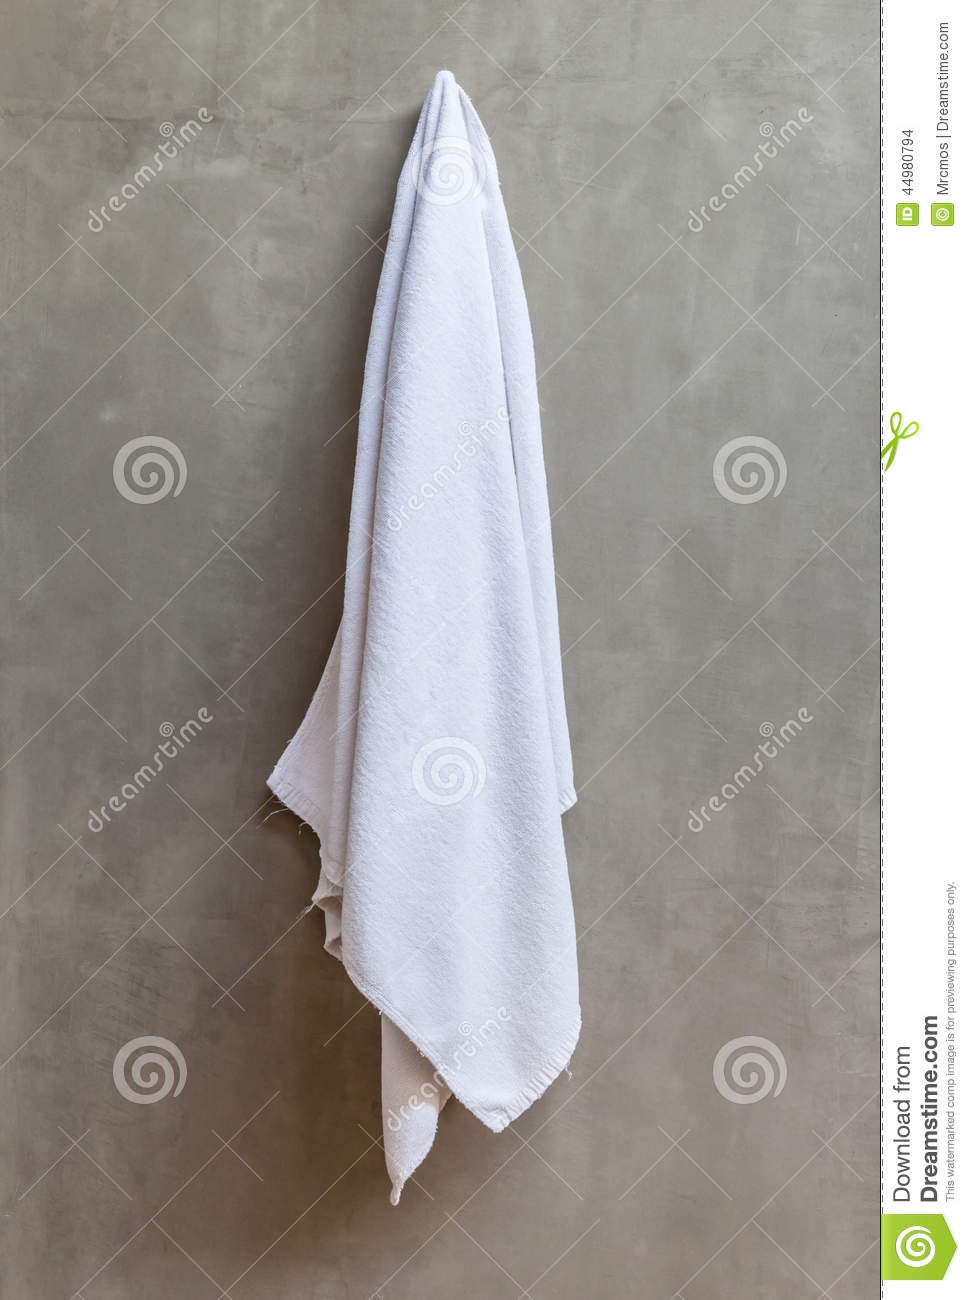 The White Towel Is Hanging On A Hanger With Concrete Wall ...